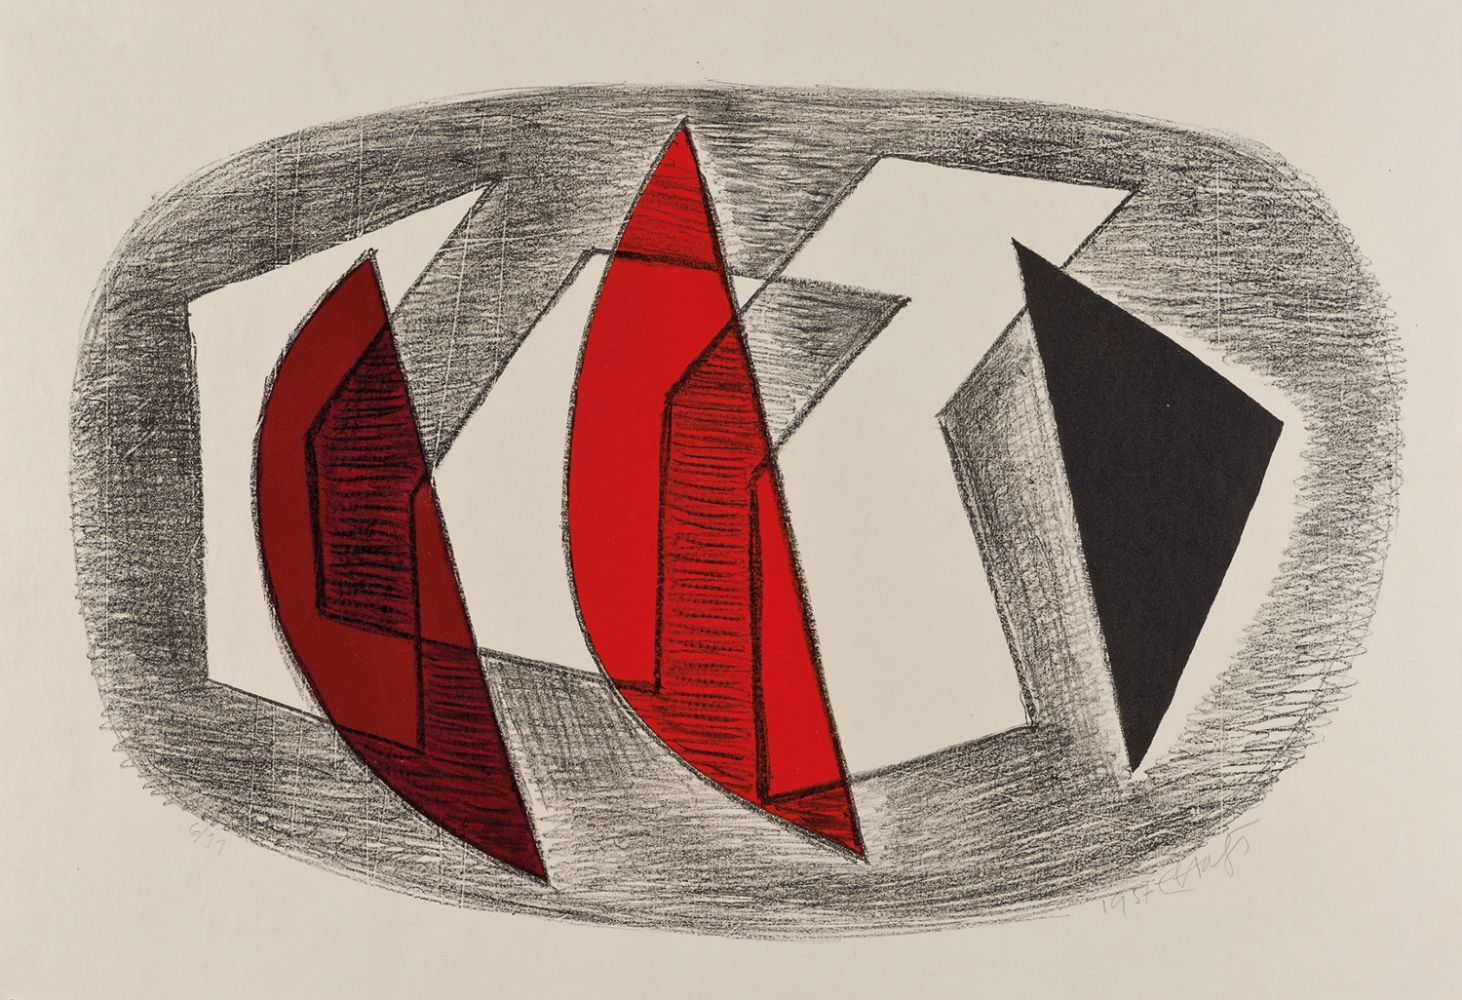 Erwin Hahs | Encountering Forces | 1956 | lithography | signed, dated and titled | 44,5 x 83